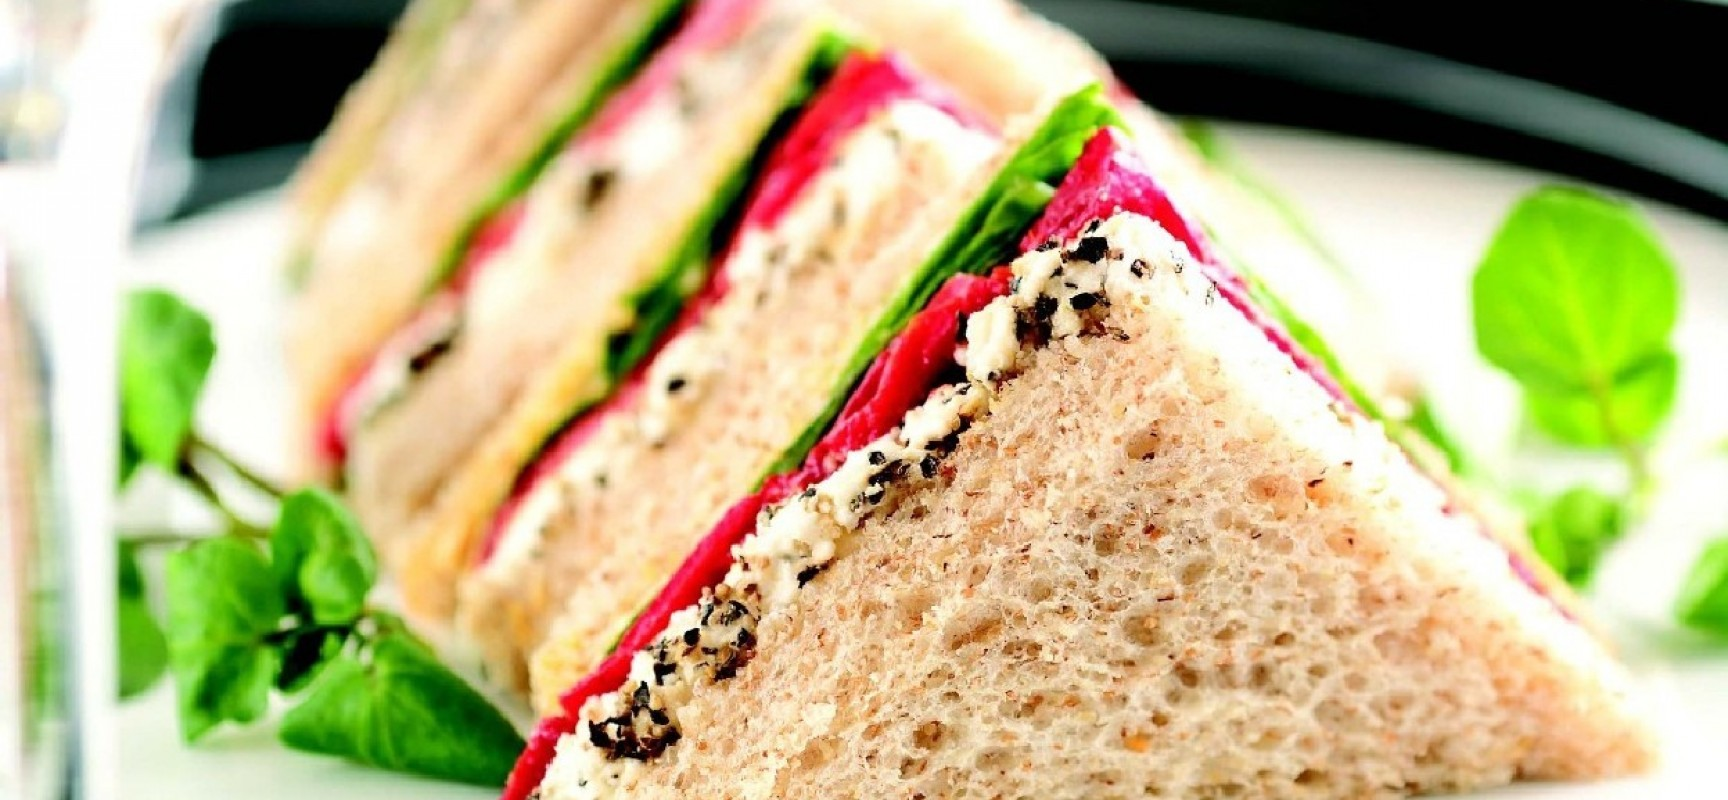 Easy sandwich recipes crave bits easy sandwich recipes forumfinder Gallery